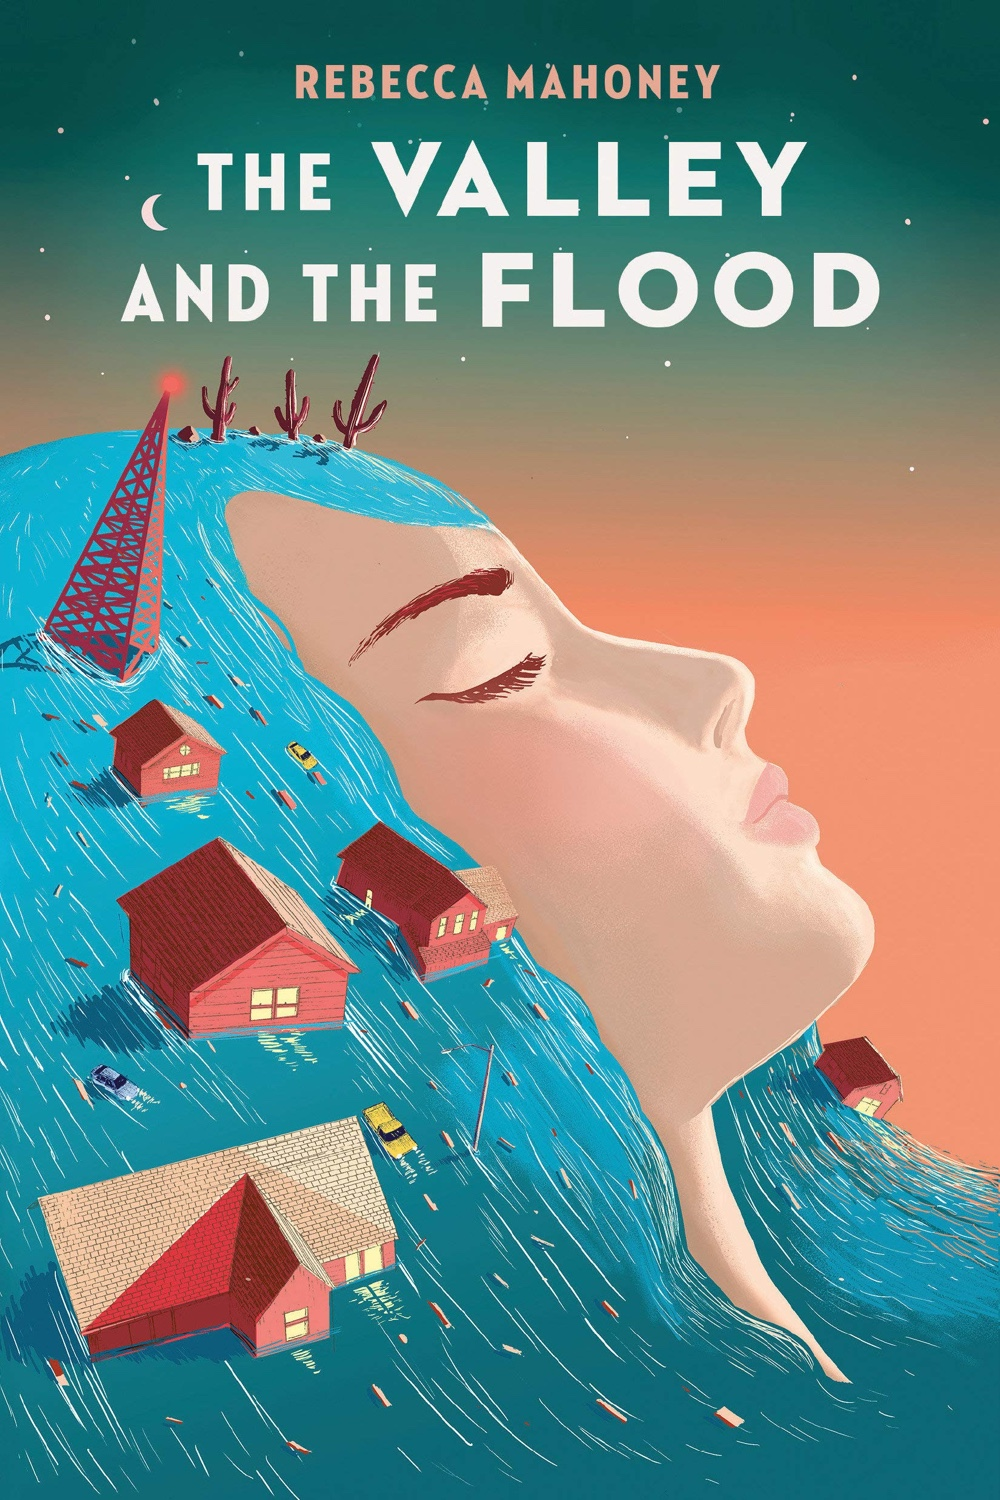 The Valley And The Flood by Rebecca Mahoney | Audiobook Review